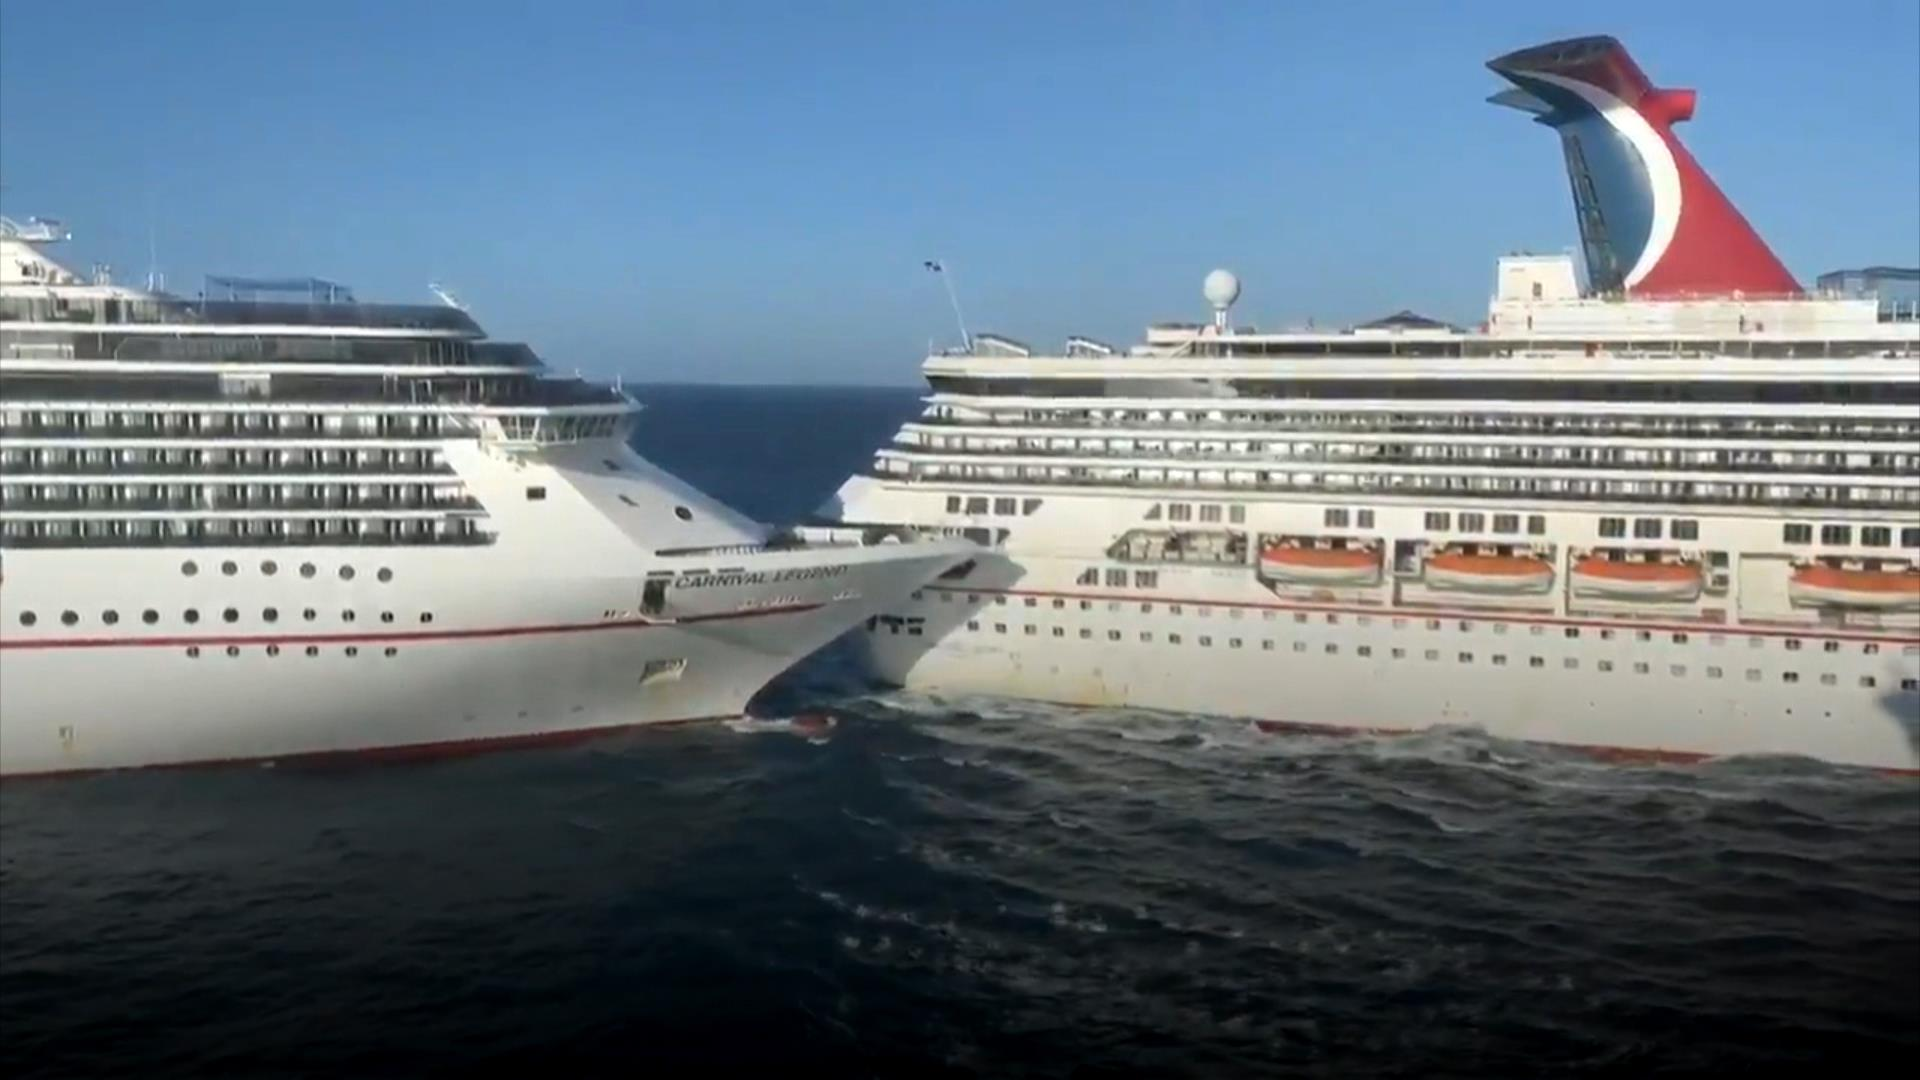 2 Carnival Cruise Ships Collide In Cozumel Mexico At Least 6 People Injured